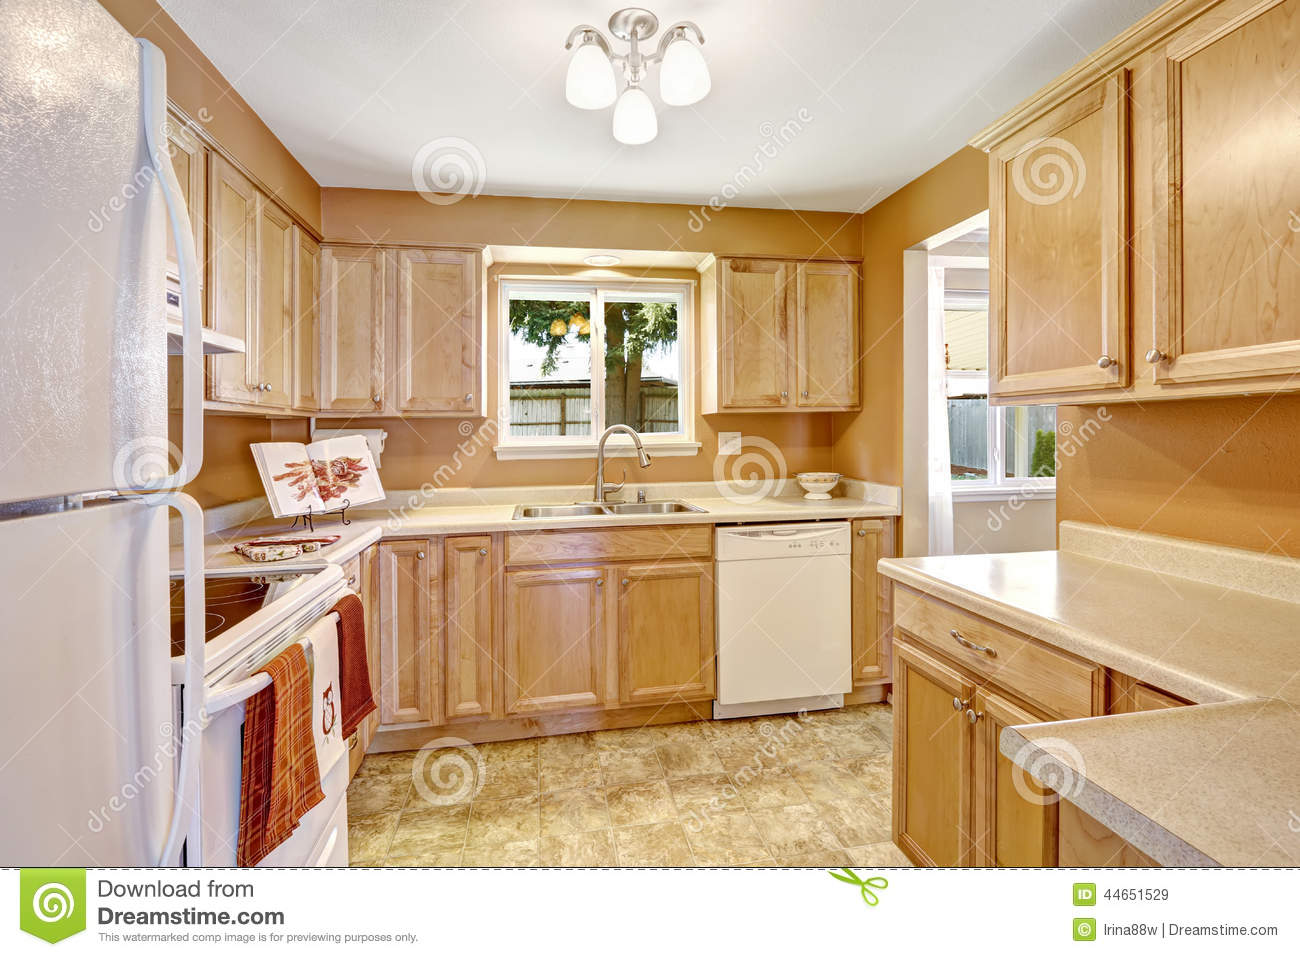 New Kitchen Cabinets With White Appliances Stock Photo Image 44651529